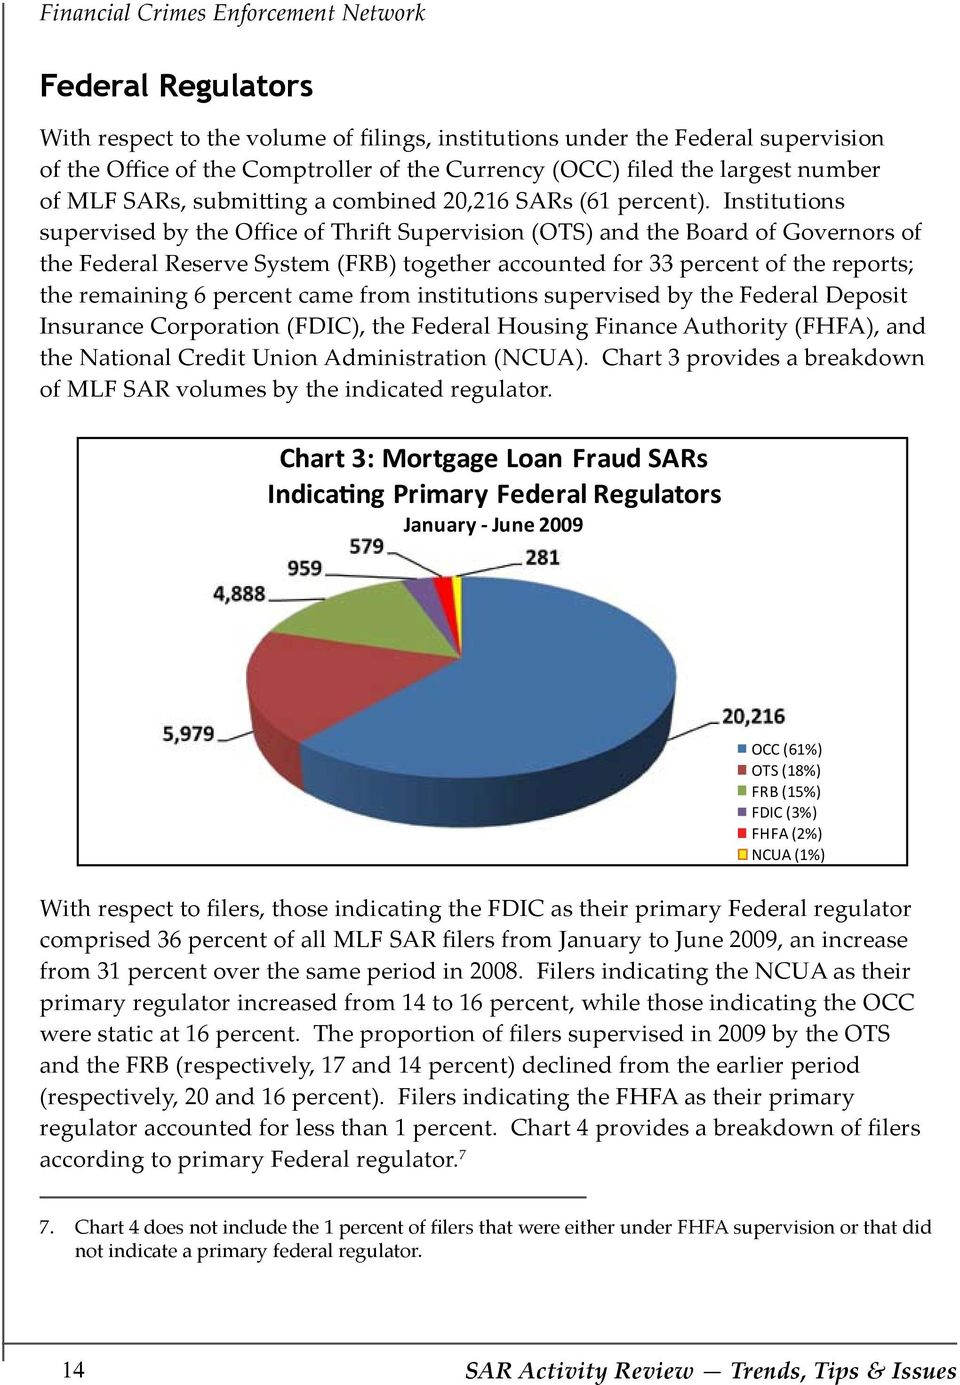 Institutions supervised by the Office of Thrift Supervision (OTS) and the Board of Governors of the Federal Reserve System (FRB) together accounted for 33 percent of the reports; the remaining 6